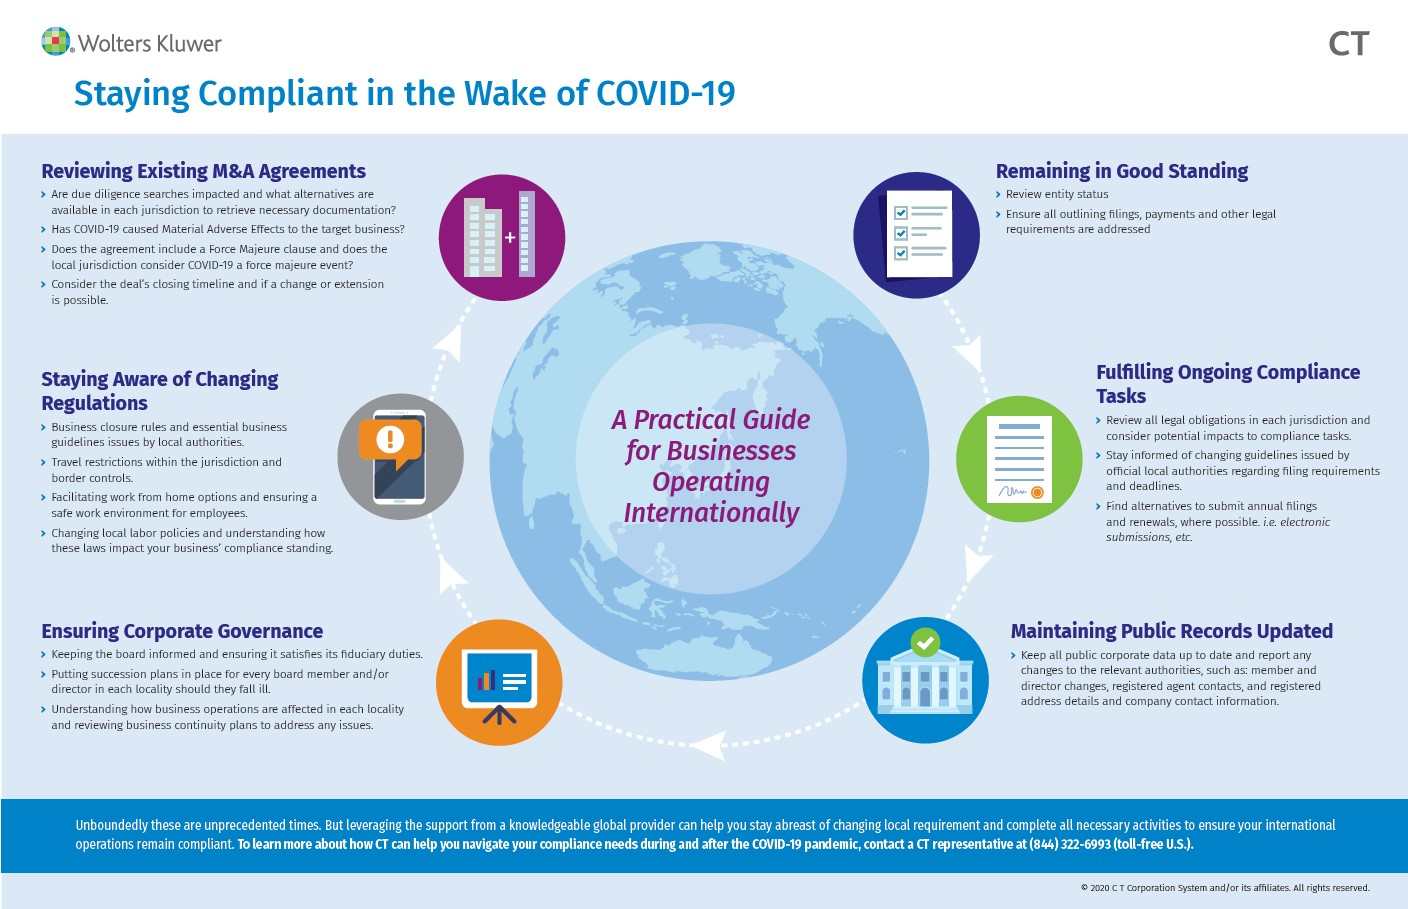 Staying Compliant in the Wake of COVID-19